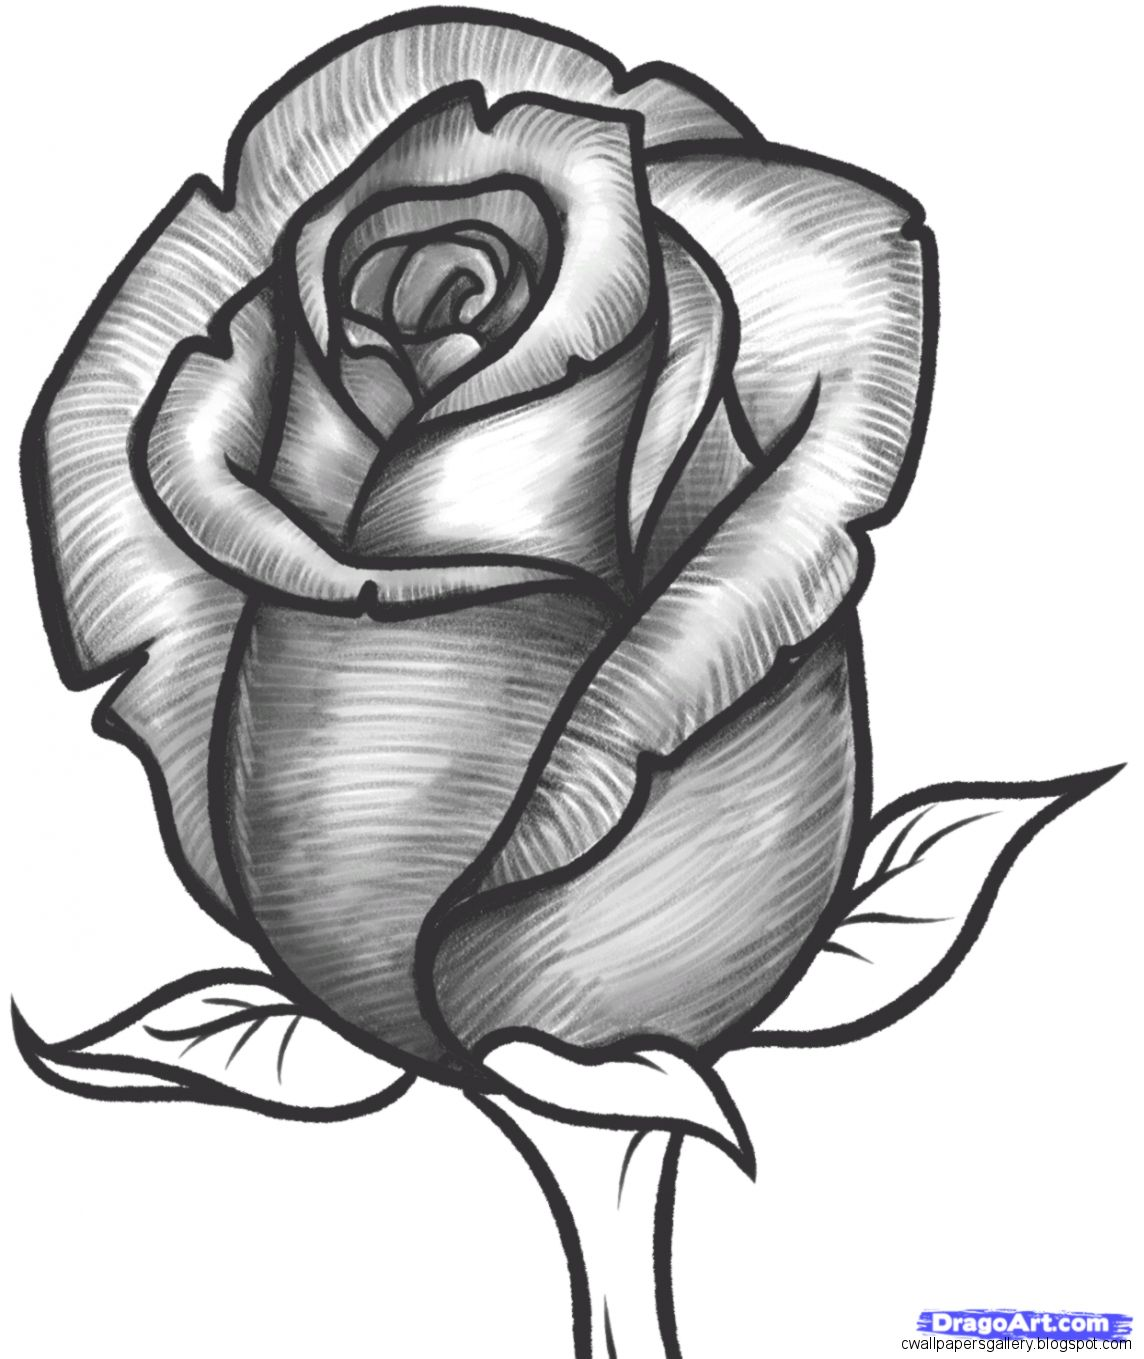 Step by step tutorial of drawing a rose using colored pencils with